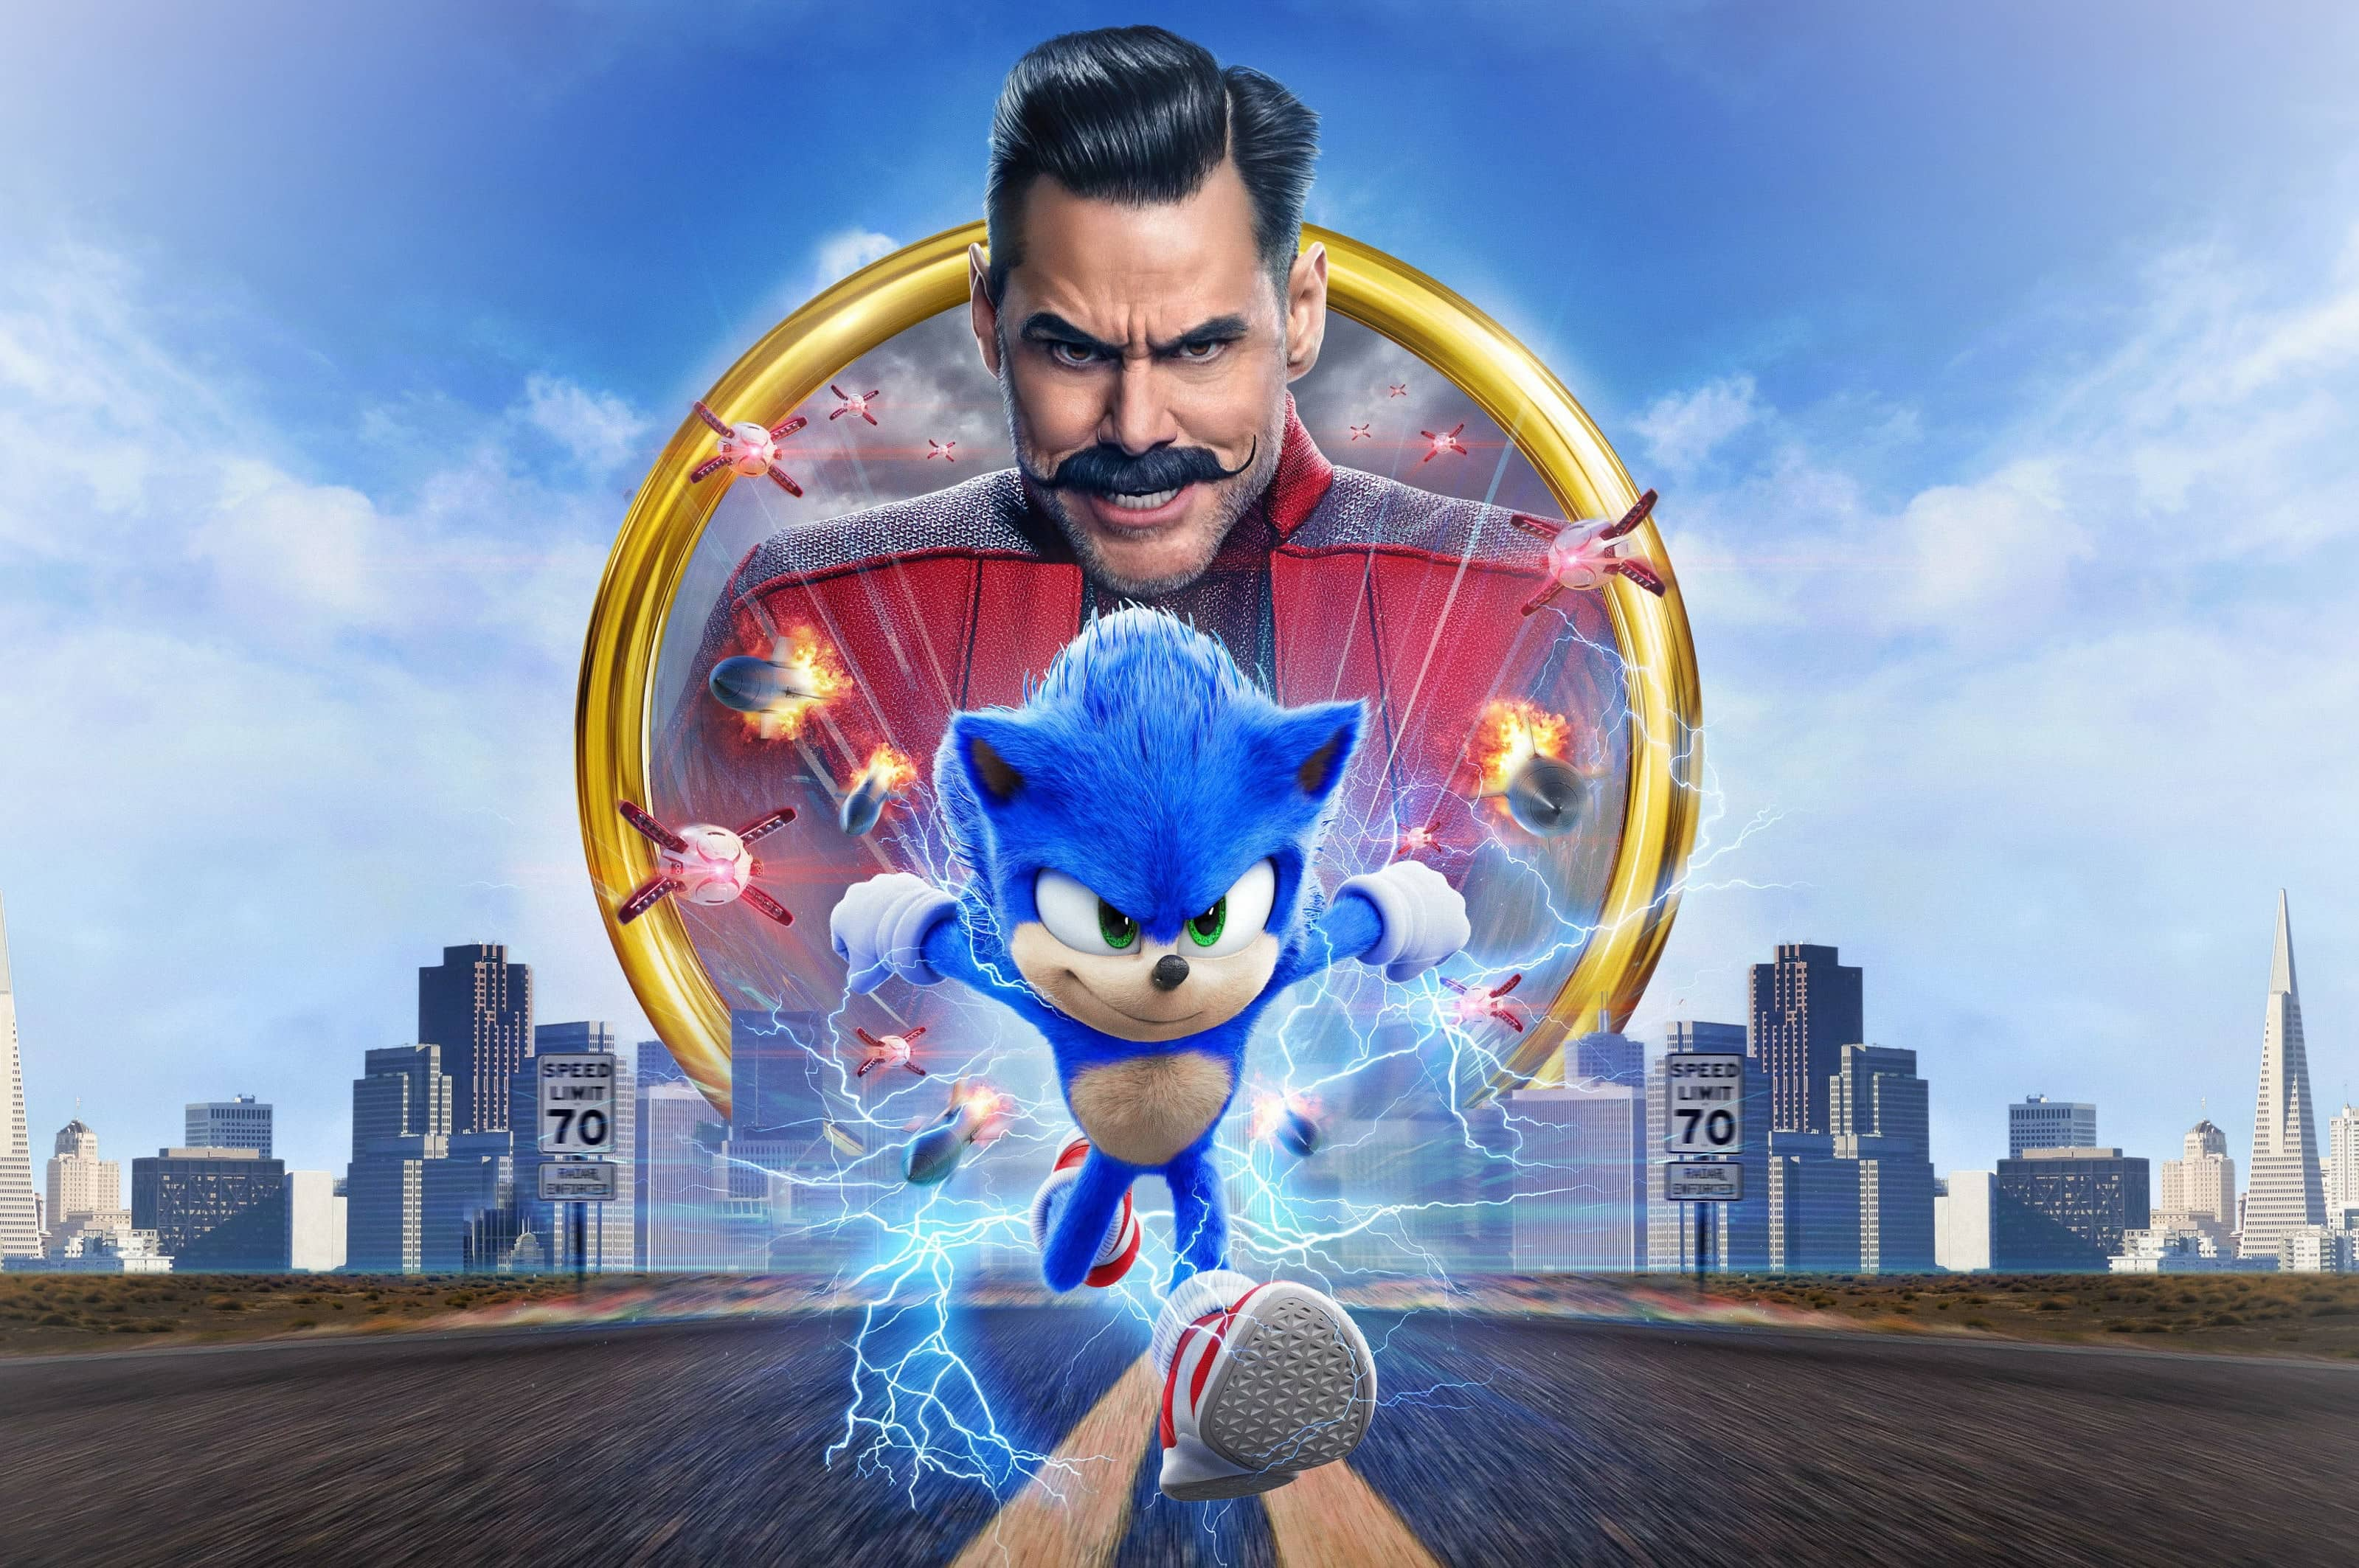 WHY WAIT? 'SONIC THE HEDGEHOG' WORTH RUSHING TO SEE